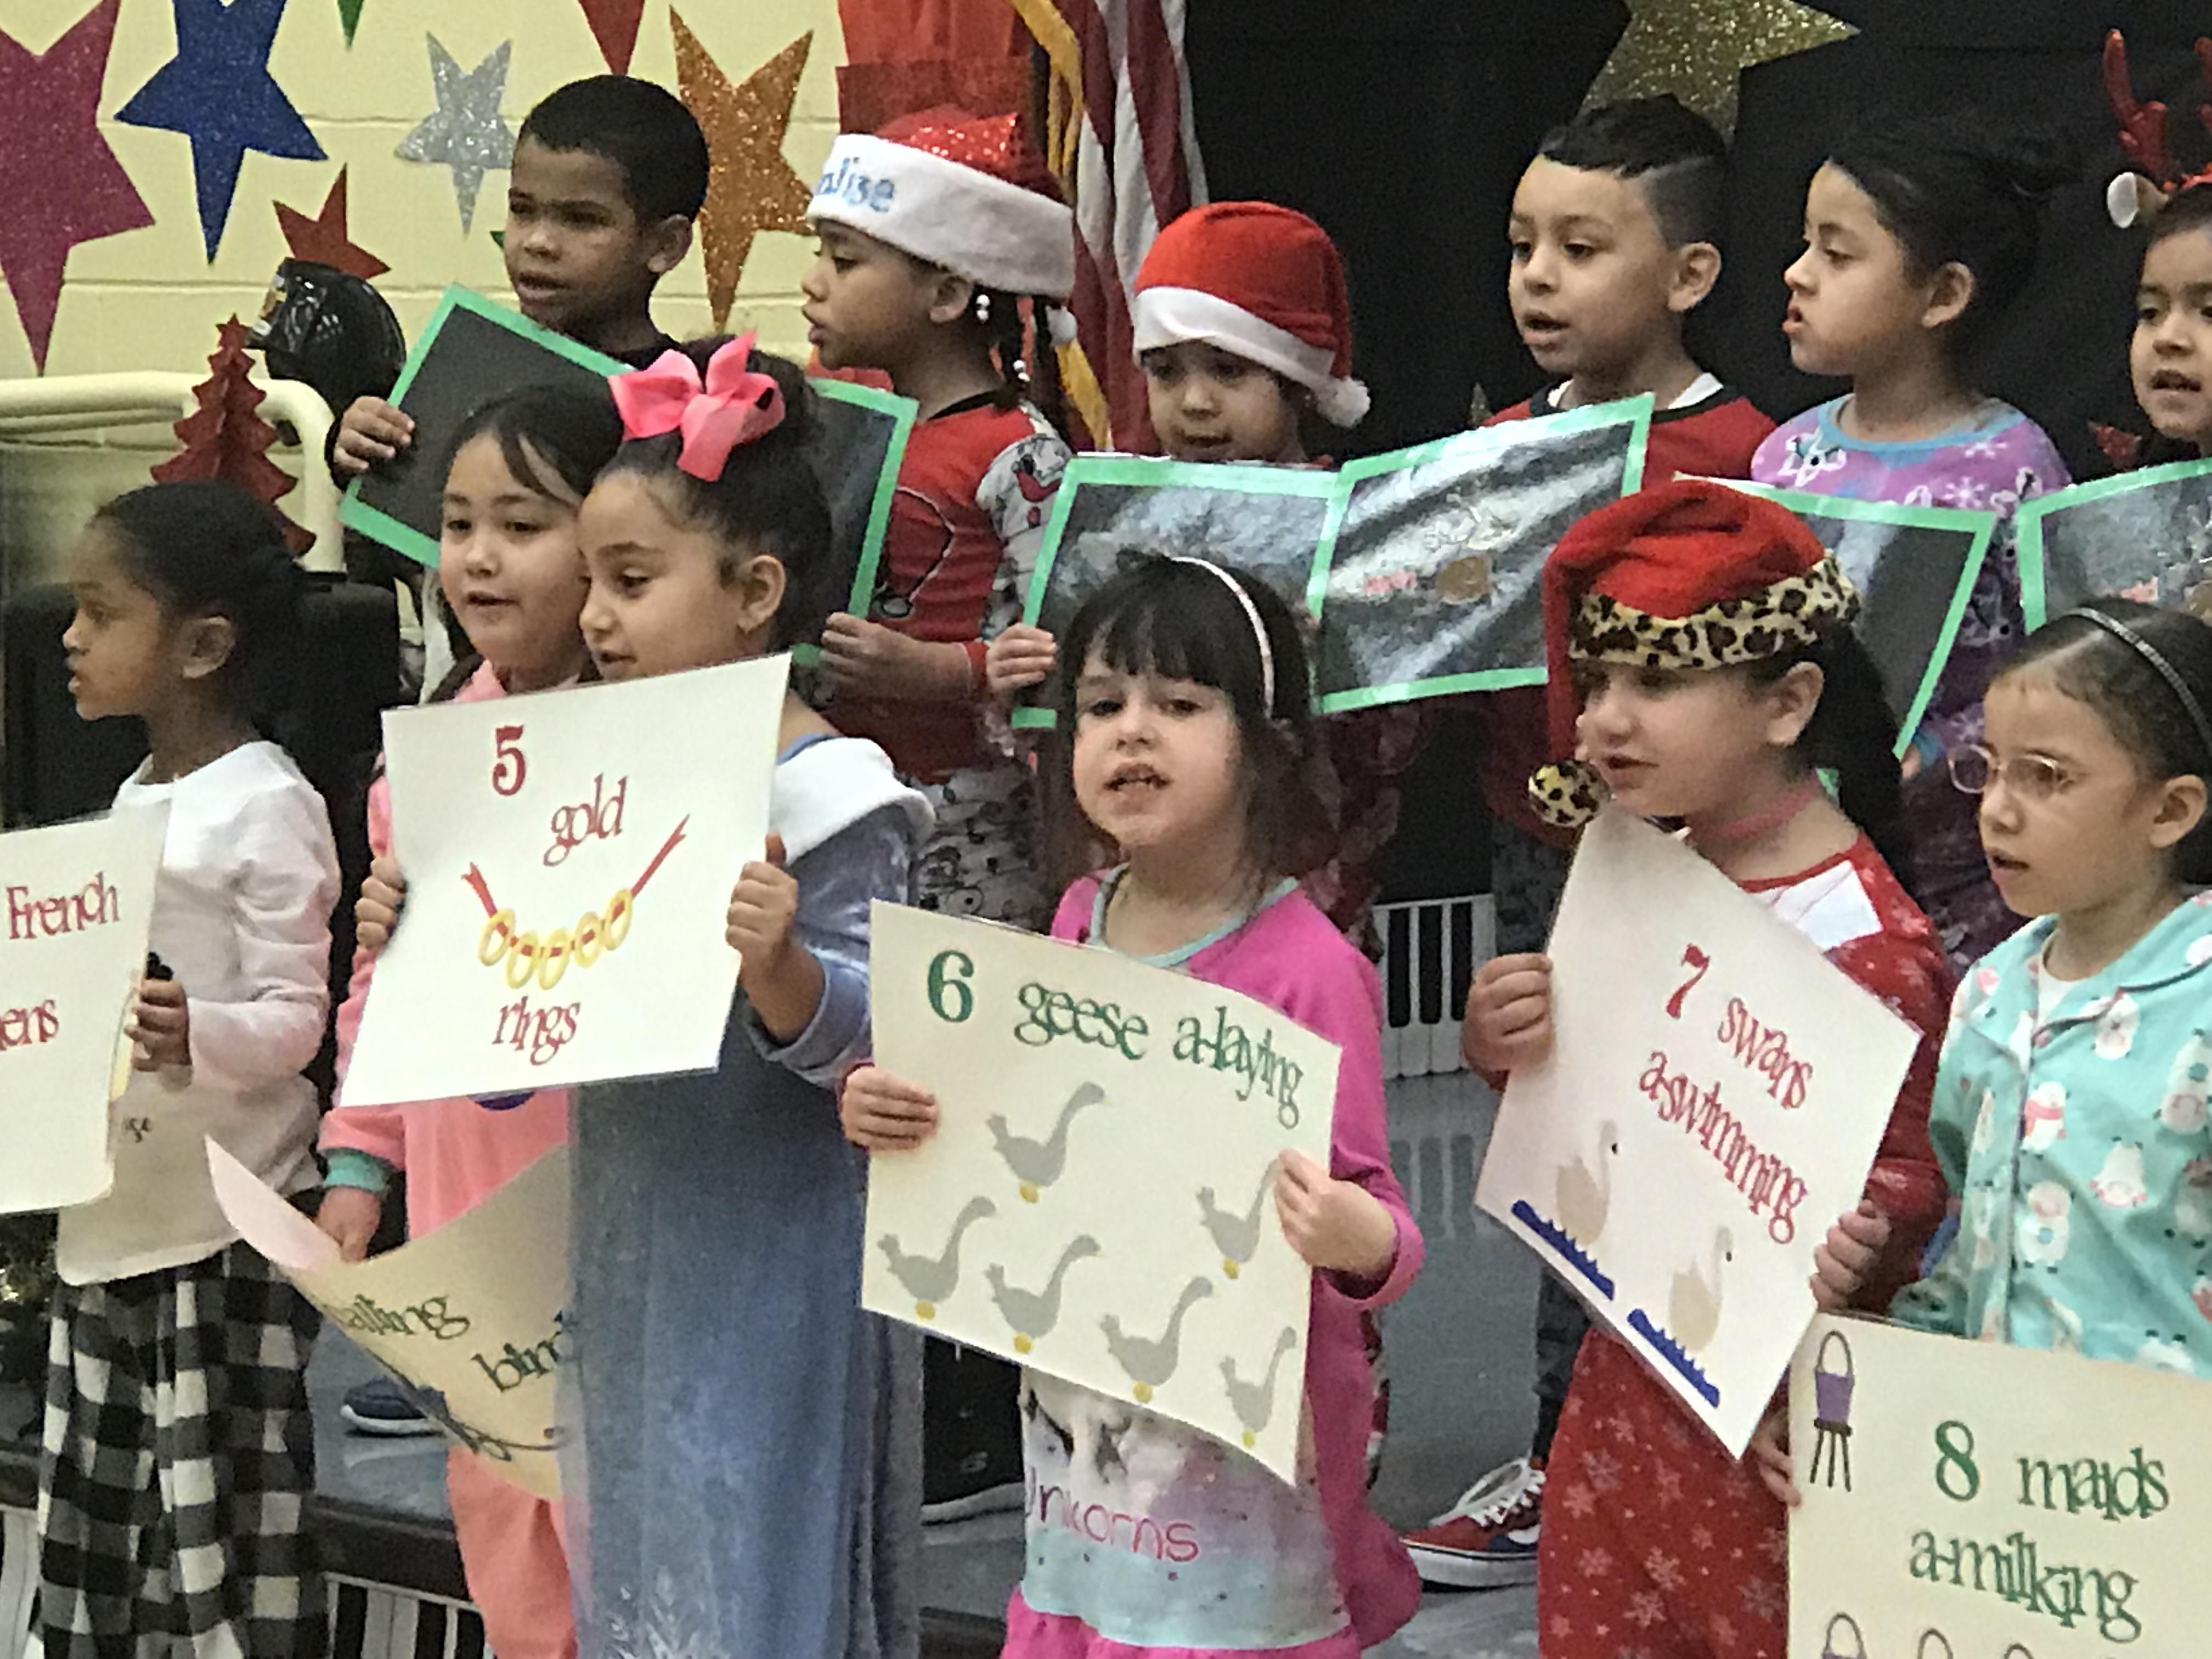 children holding up signs of the famous Christmas song